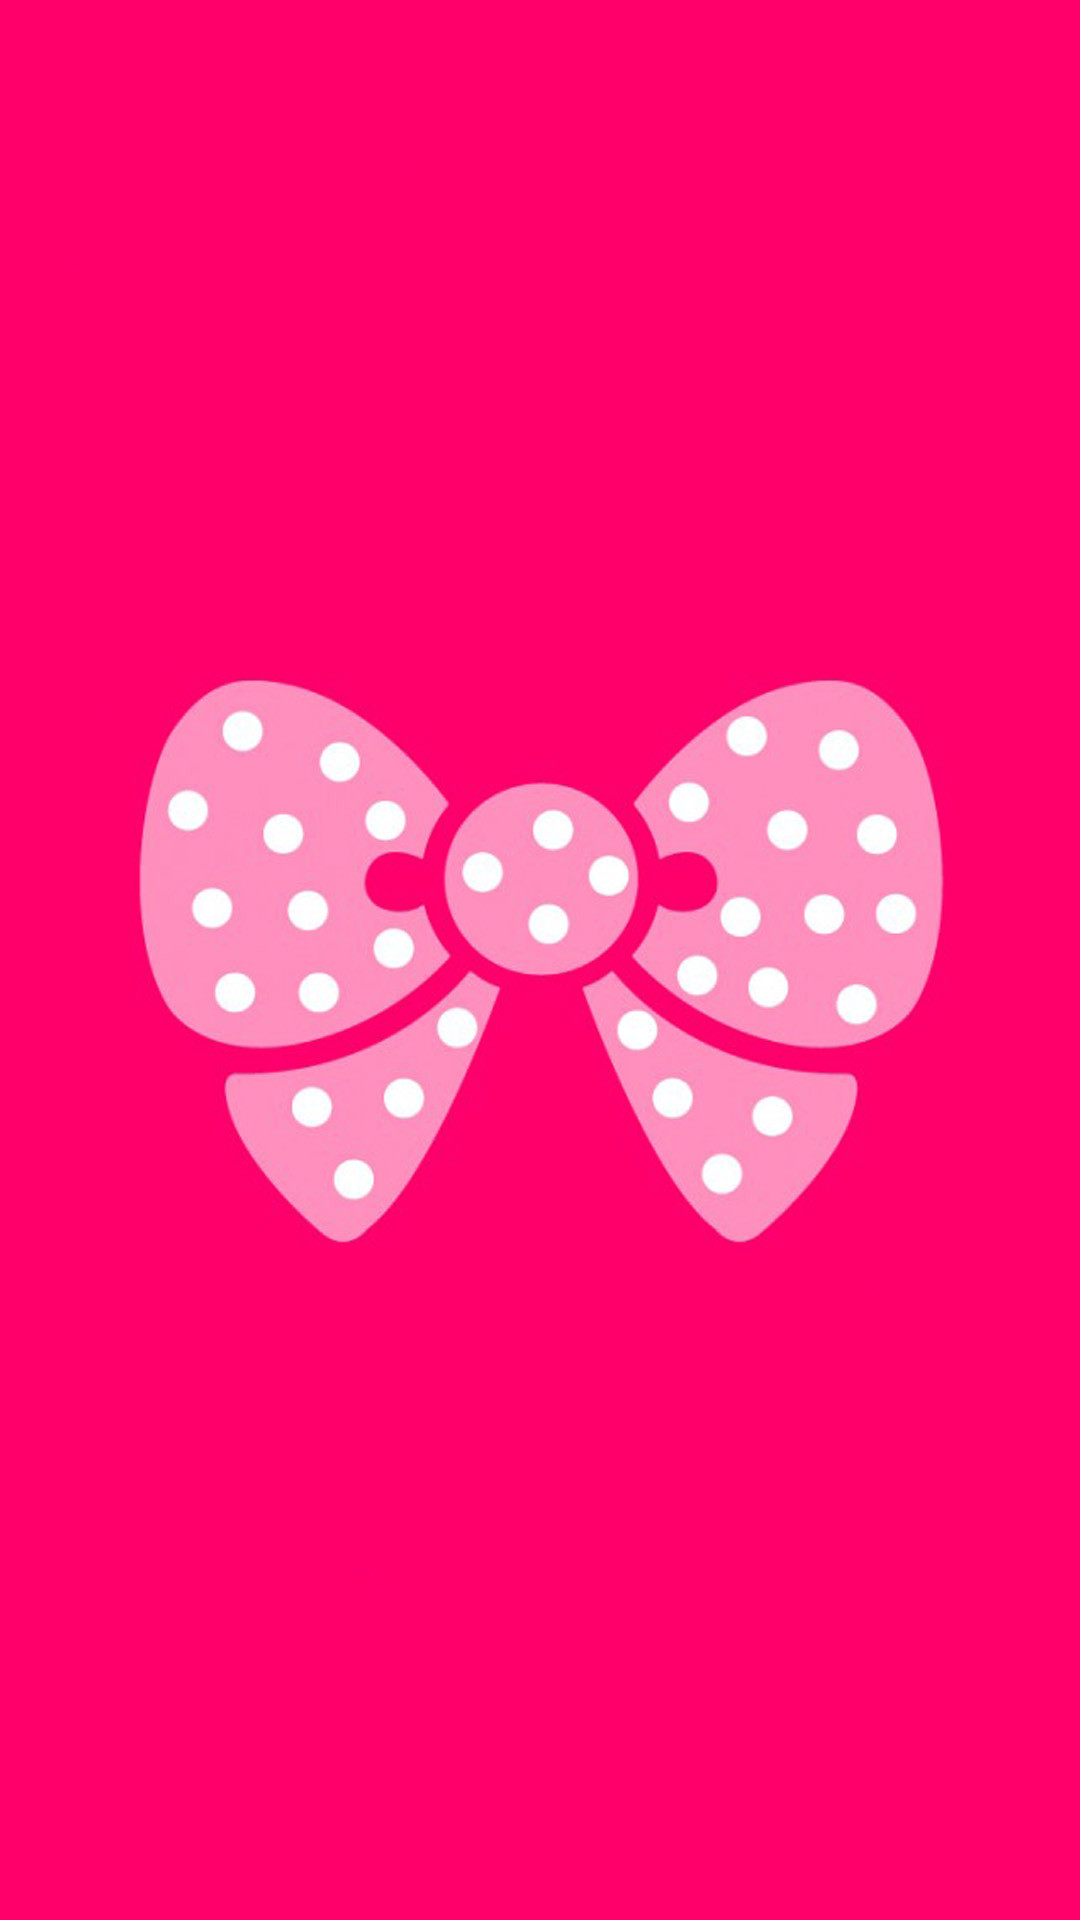 Cute Girly Wallpapers For Iphone 72 Images